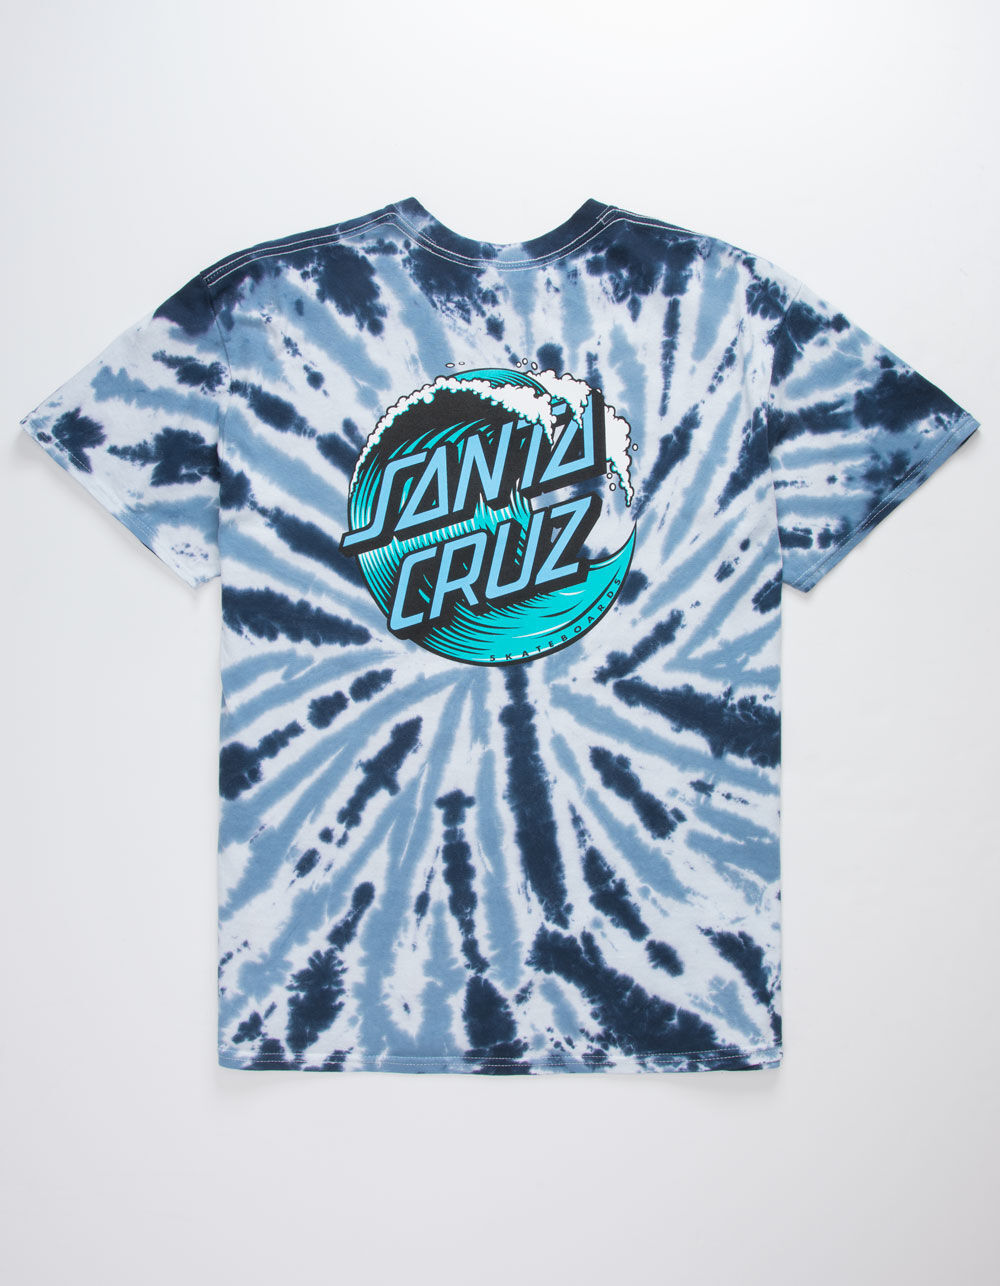 SANTA CRUZ Wave Dot Tie Dye T-Shirt